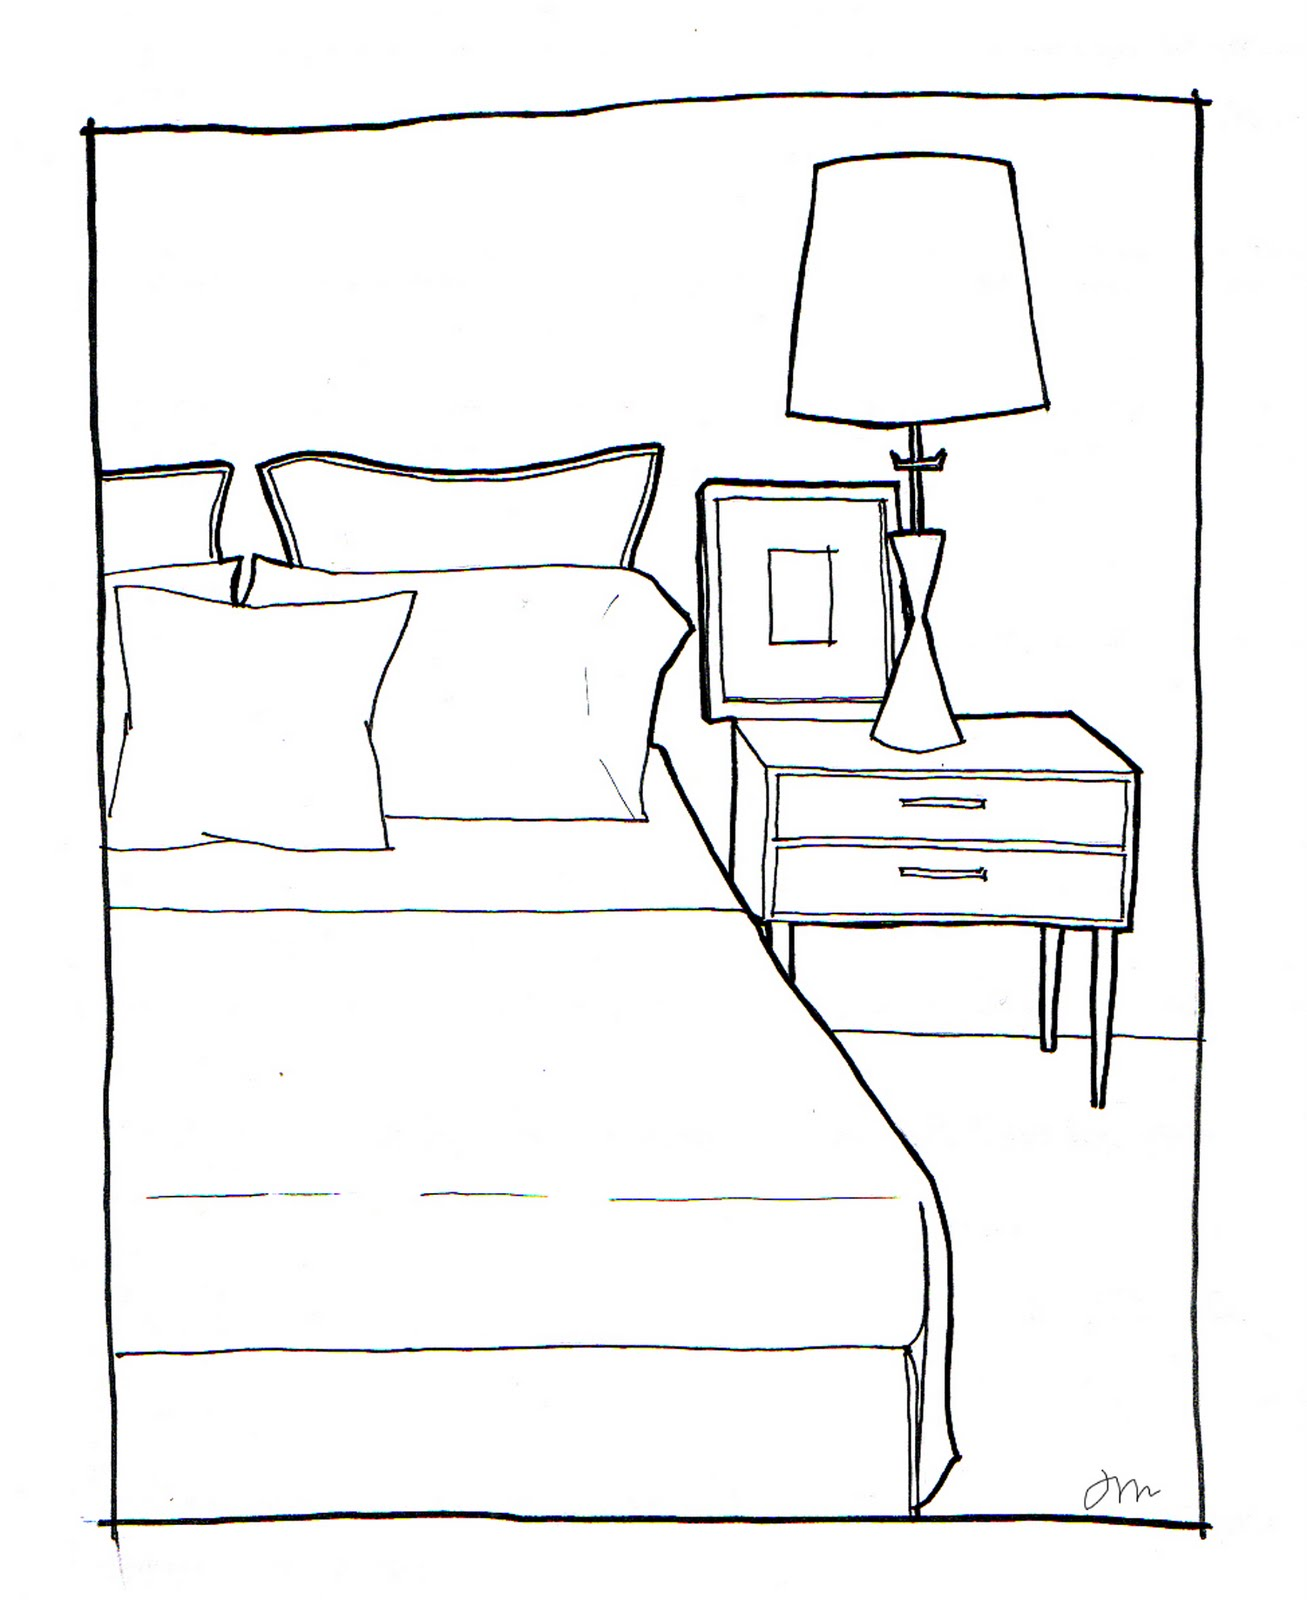 Interior Design Bedroom Sketches draw interior design bedroom bedroom sketch | decorate my house